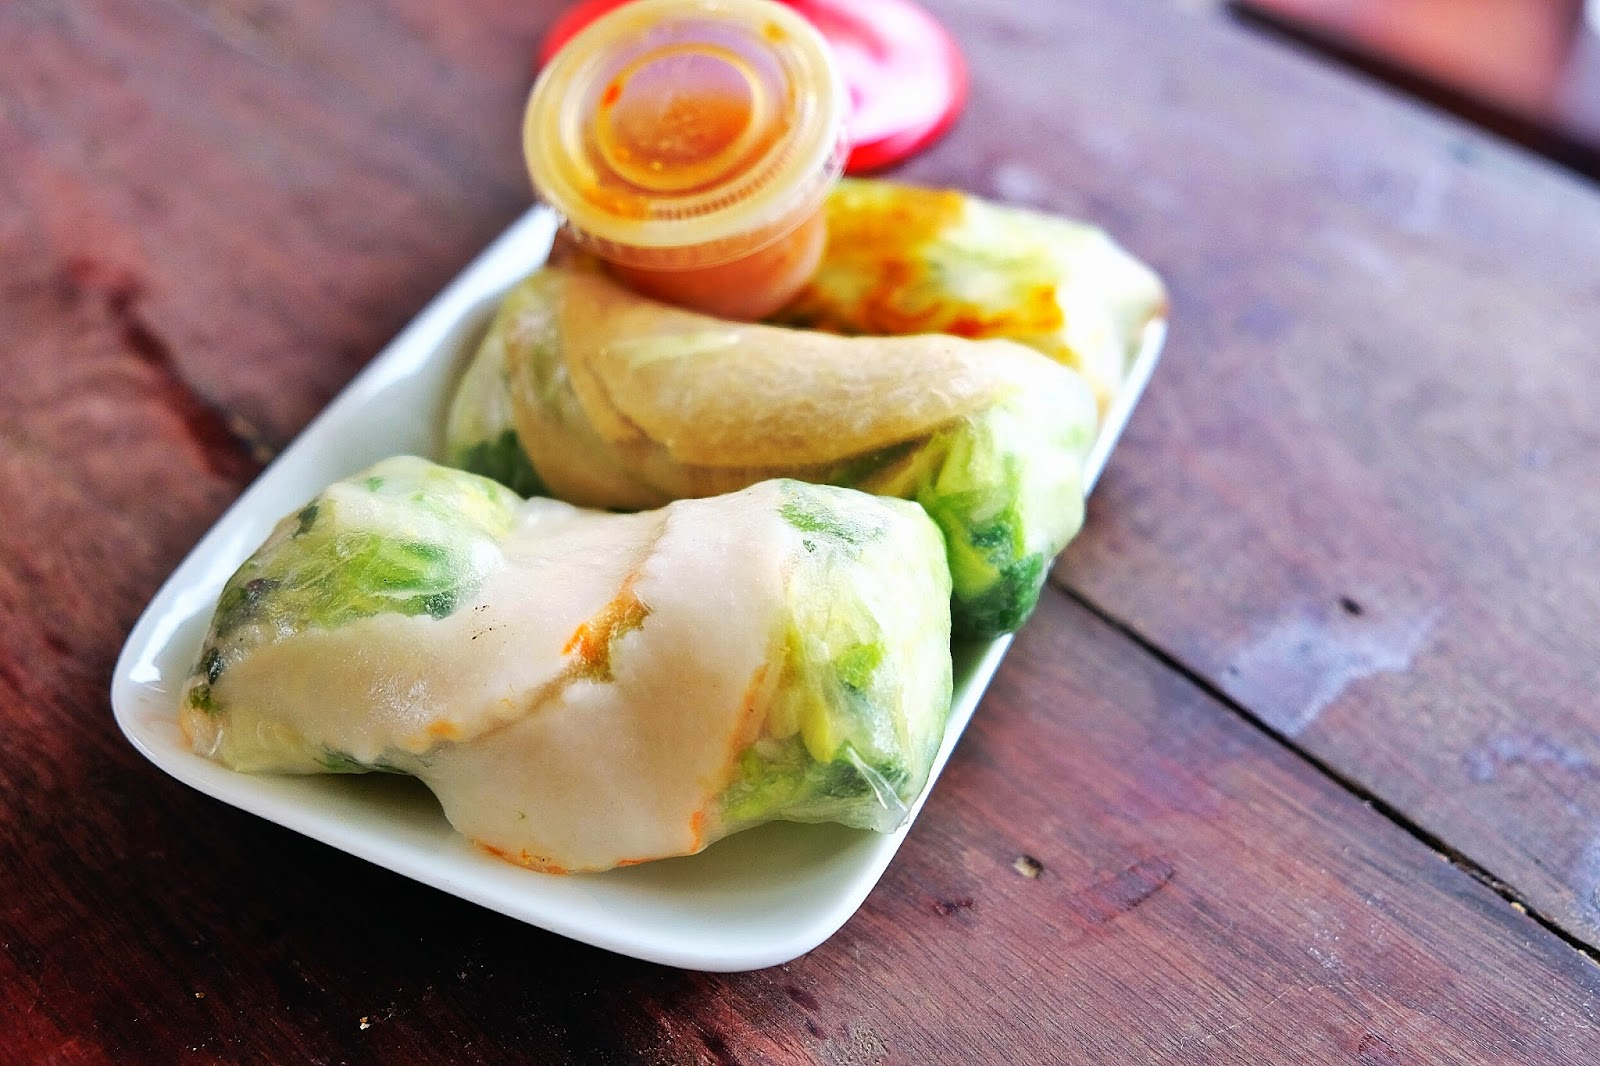 Mr Nomnom And I Tried A Few Of The Rice Paper Rolls We Chose The Duck Prawn And Tofu I Came To Like The Duck One As It S Rich And Saucy But